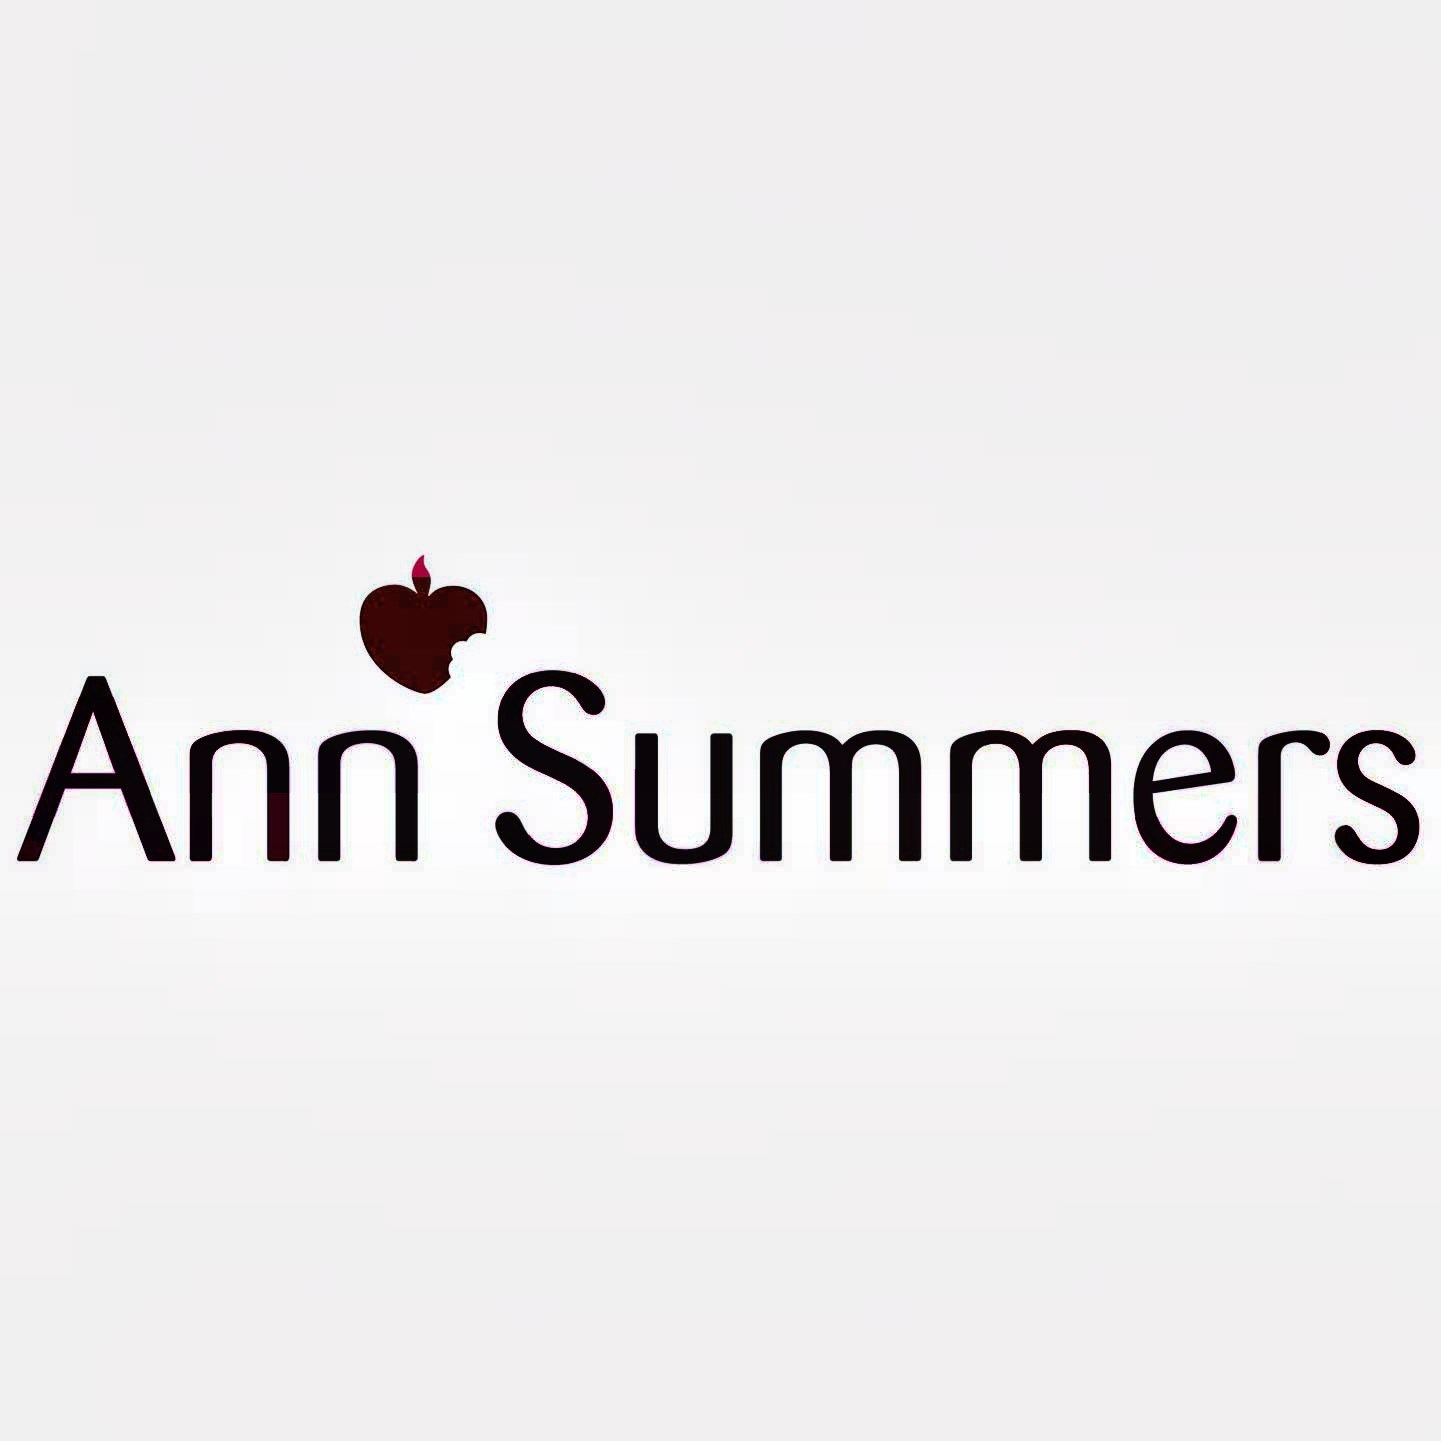 ann summers known people famous people news and